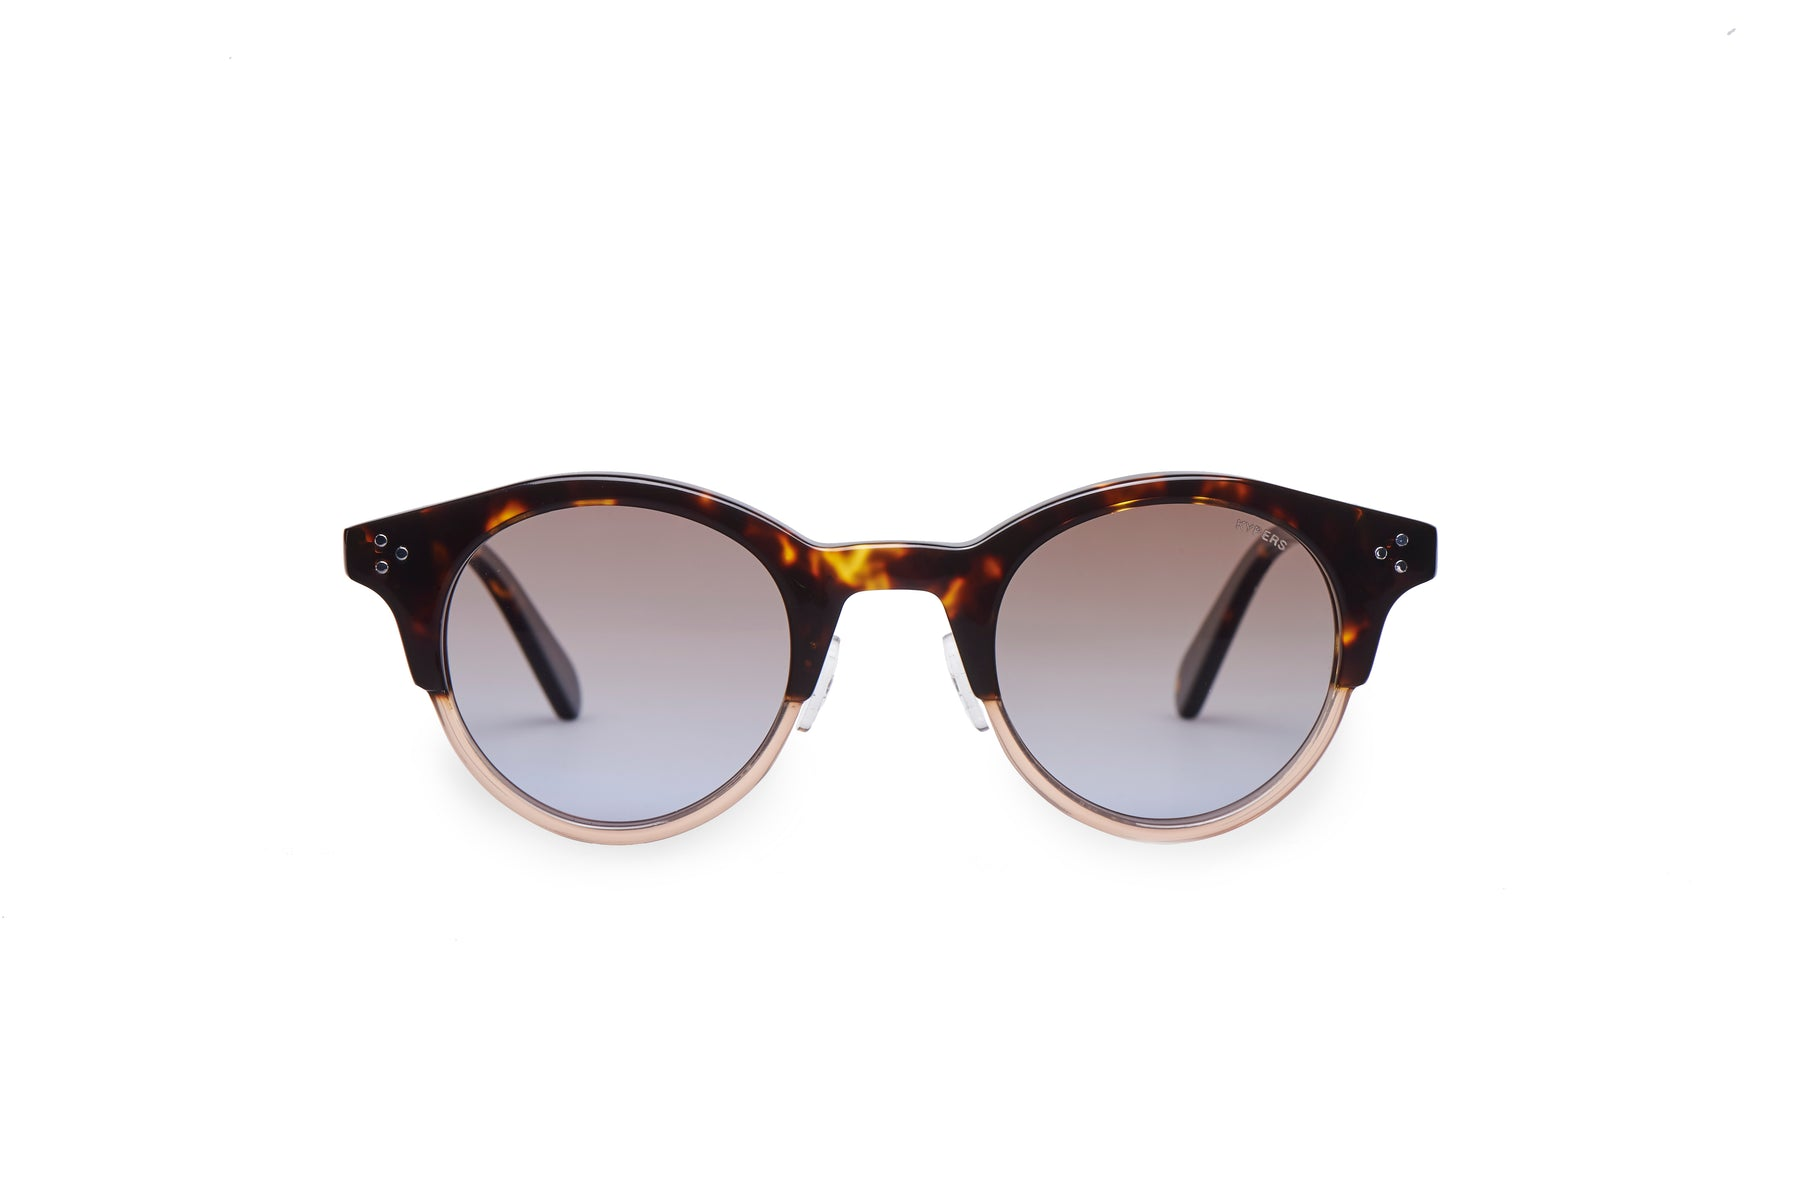 KYPERS sunglasses model LOLA LO001 with dark havana & crystal rose frame and gradient brown lens